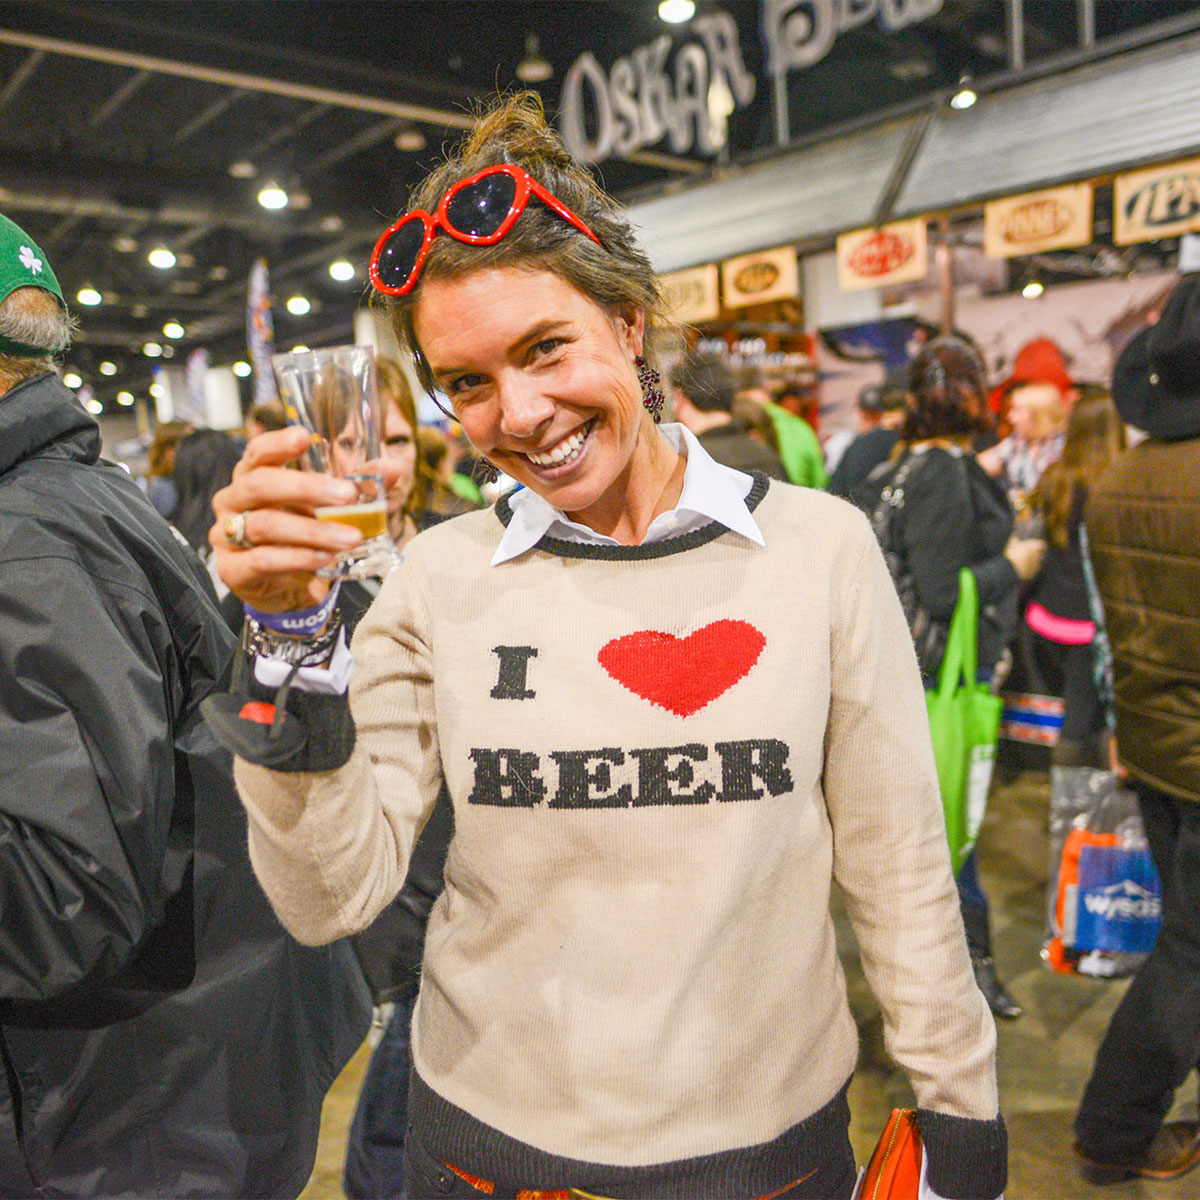 THE GREAT AMERICAN BEER FEST RUNS OCT. 5-7 IN 2017. (CREDIT: BREWERS ASSOCIATION)